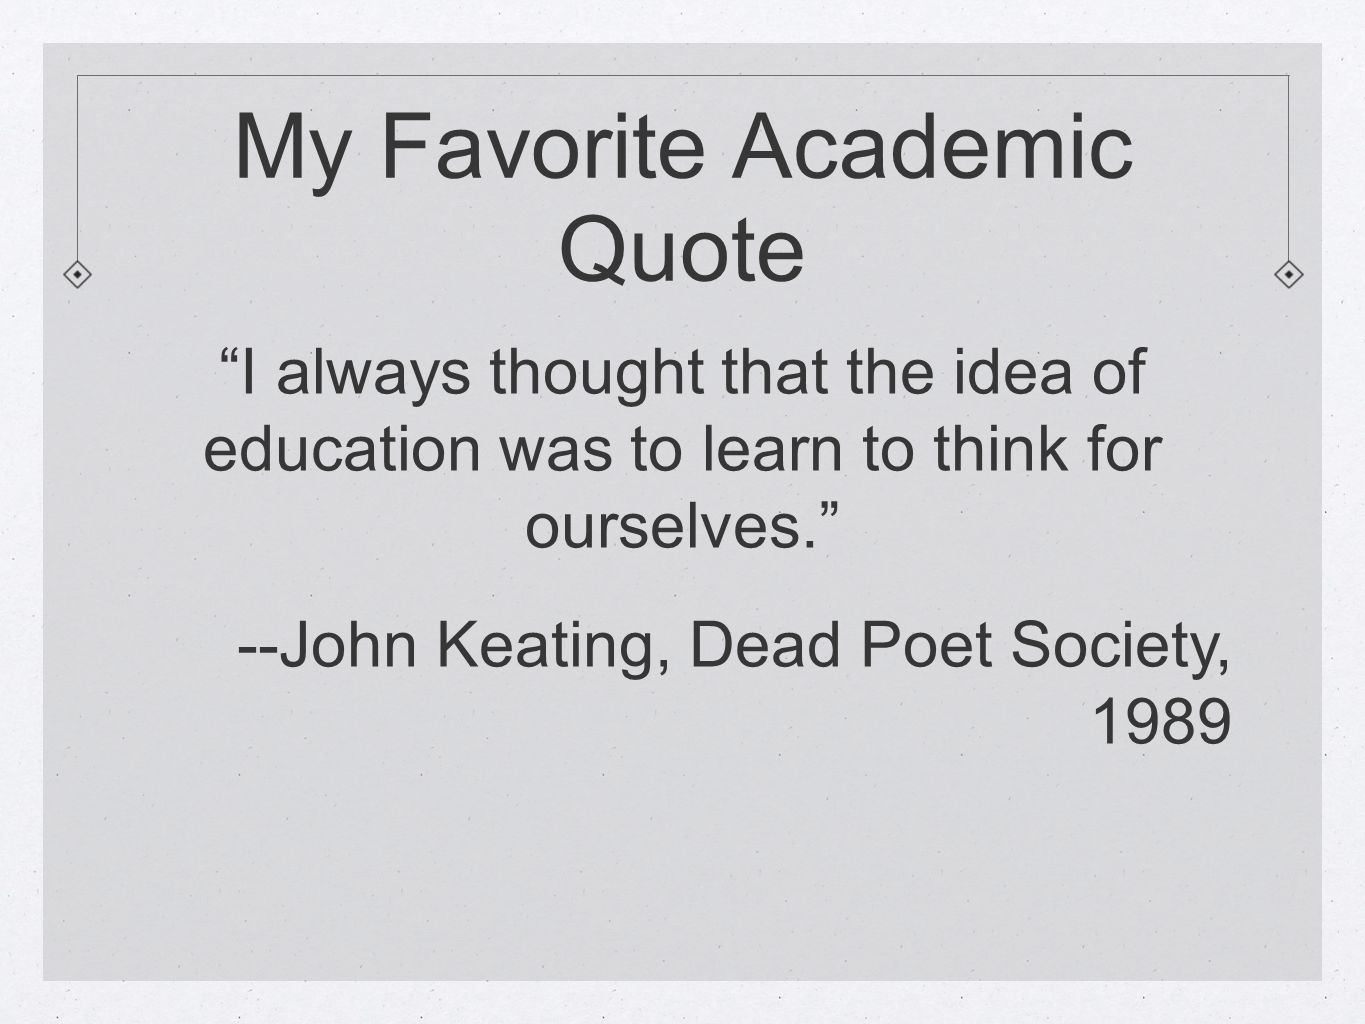 philosophy in dead poets society essay Dead poets society and how it displays transcendentalism there are many times in the movie dead poets society where transcendentalism is displayed but i am just going to discuss a few of them and transcendentalism in general.